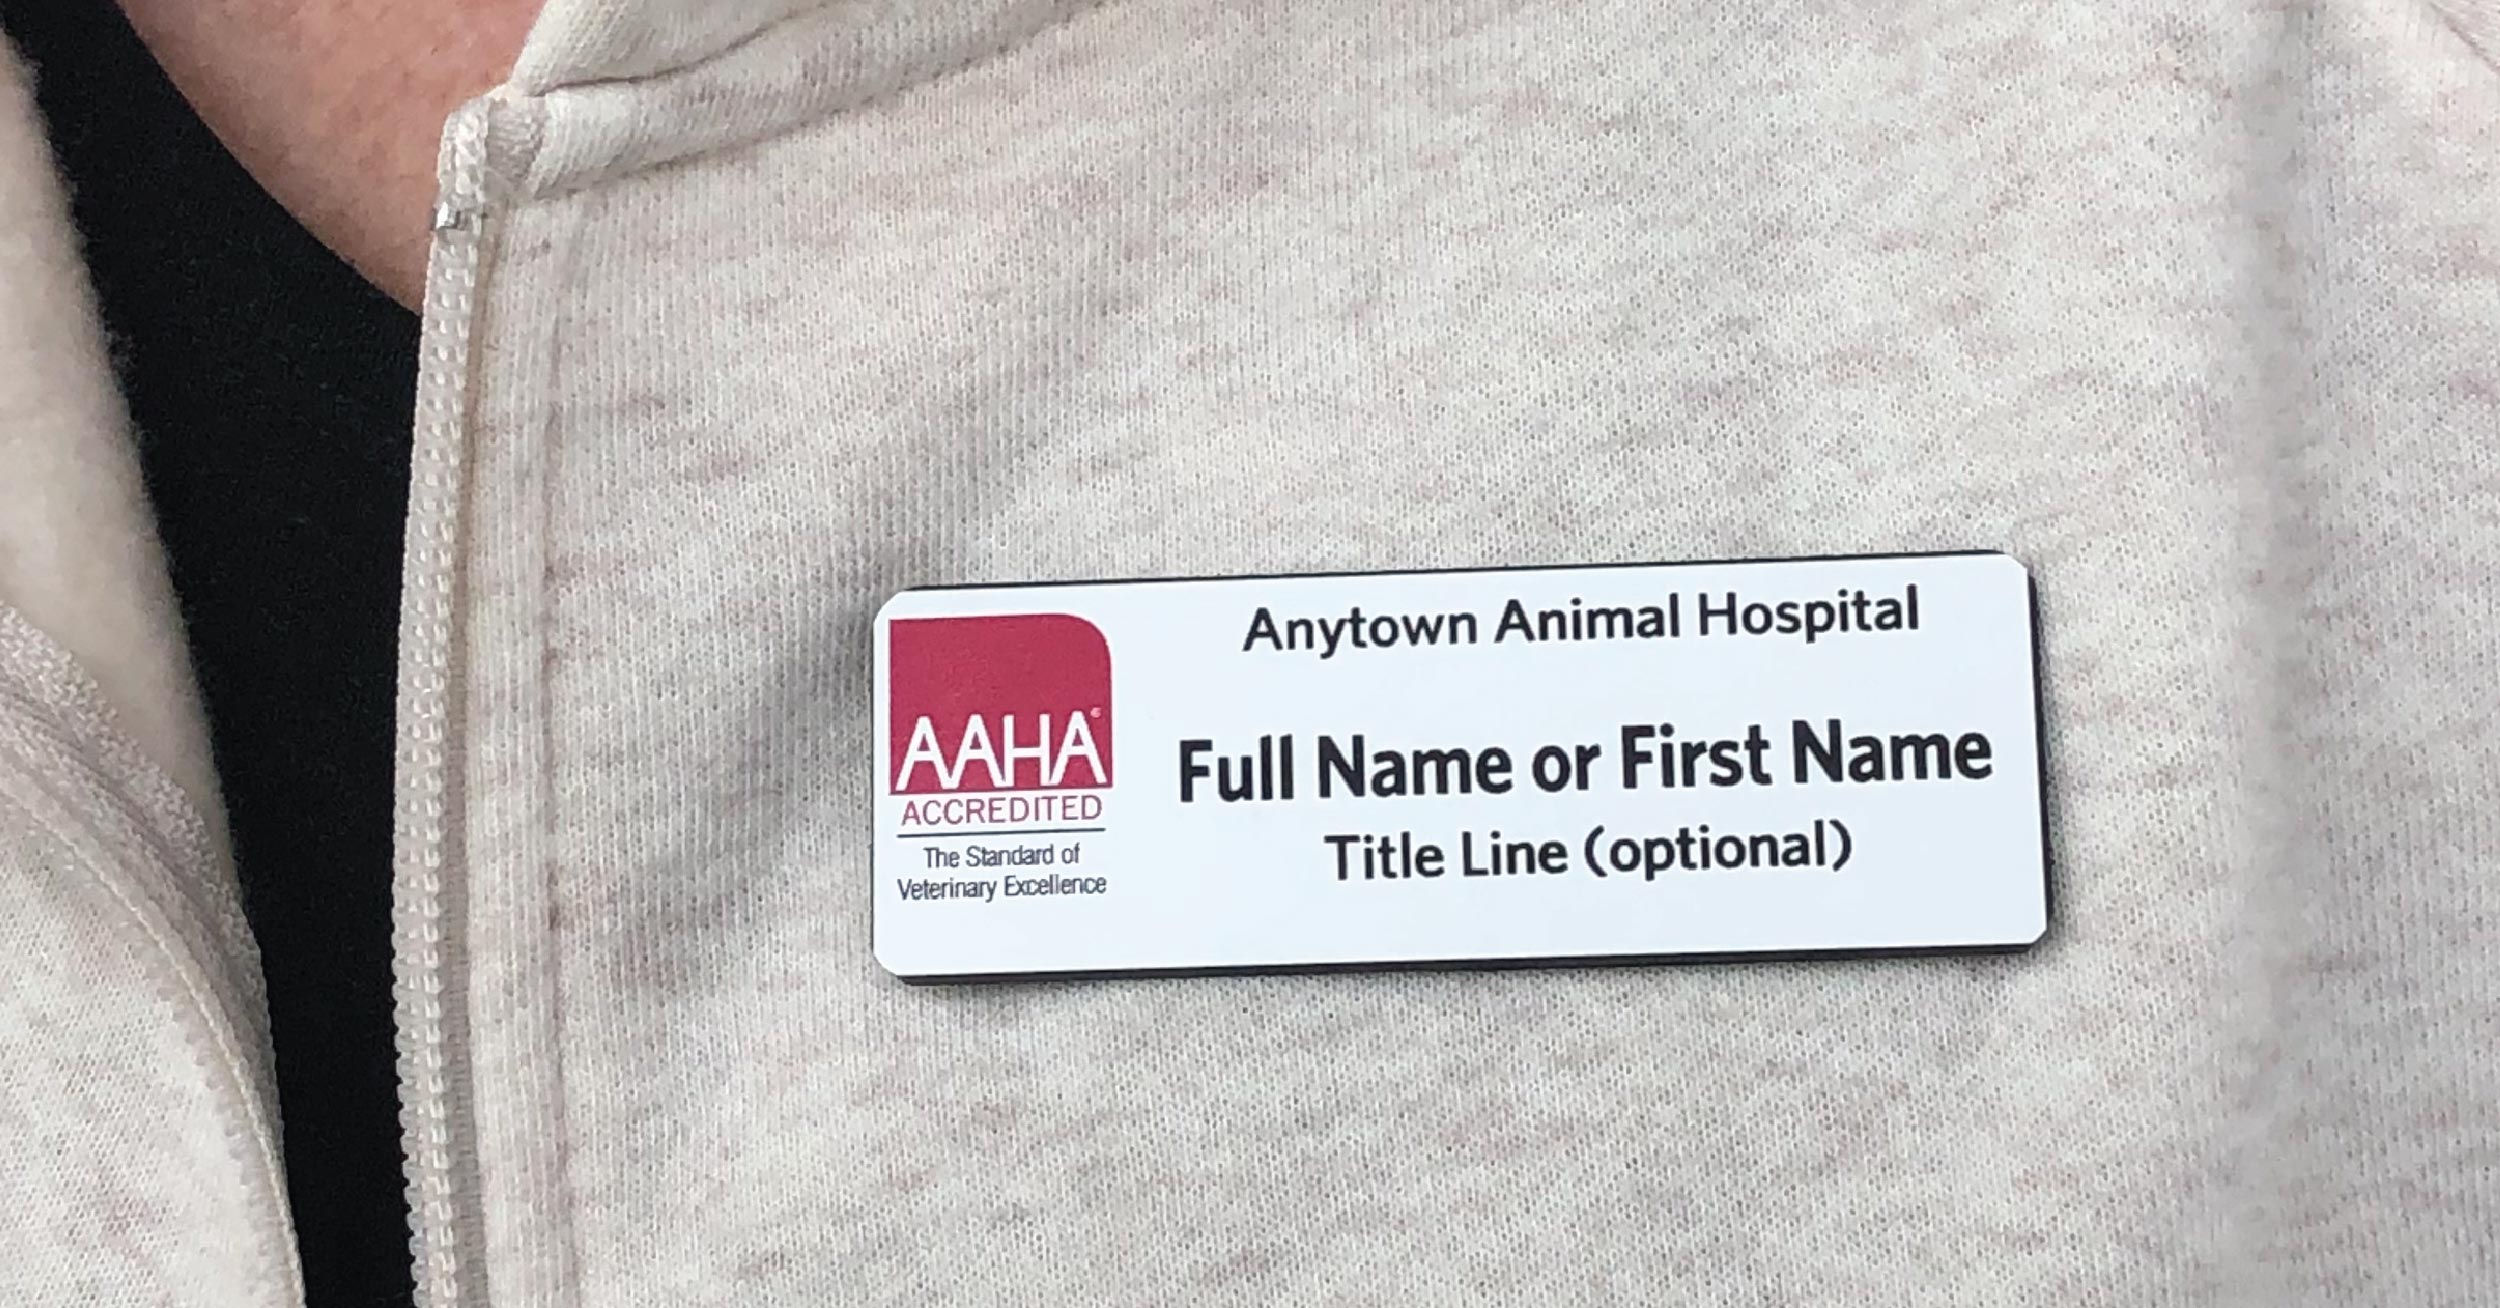 AAHA Style B Badge Starting at just $5.25 Each